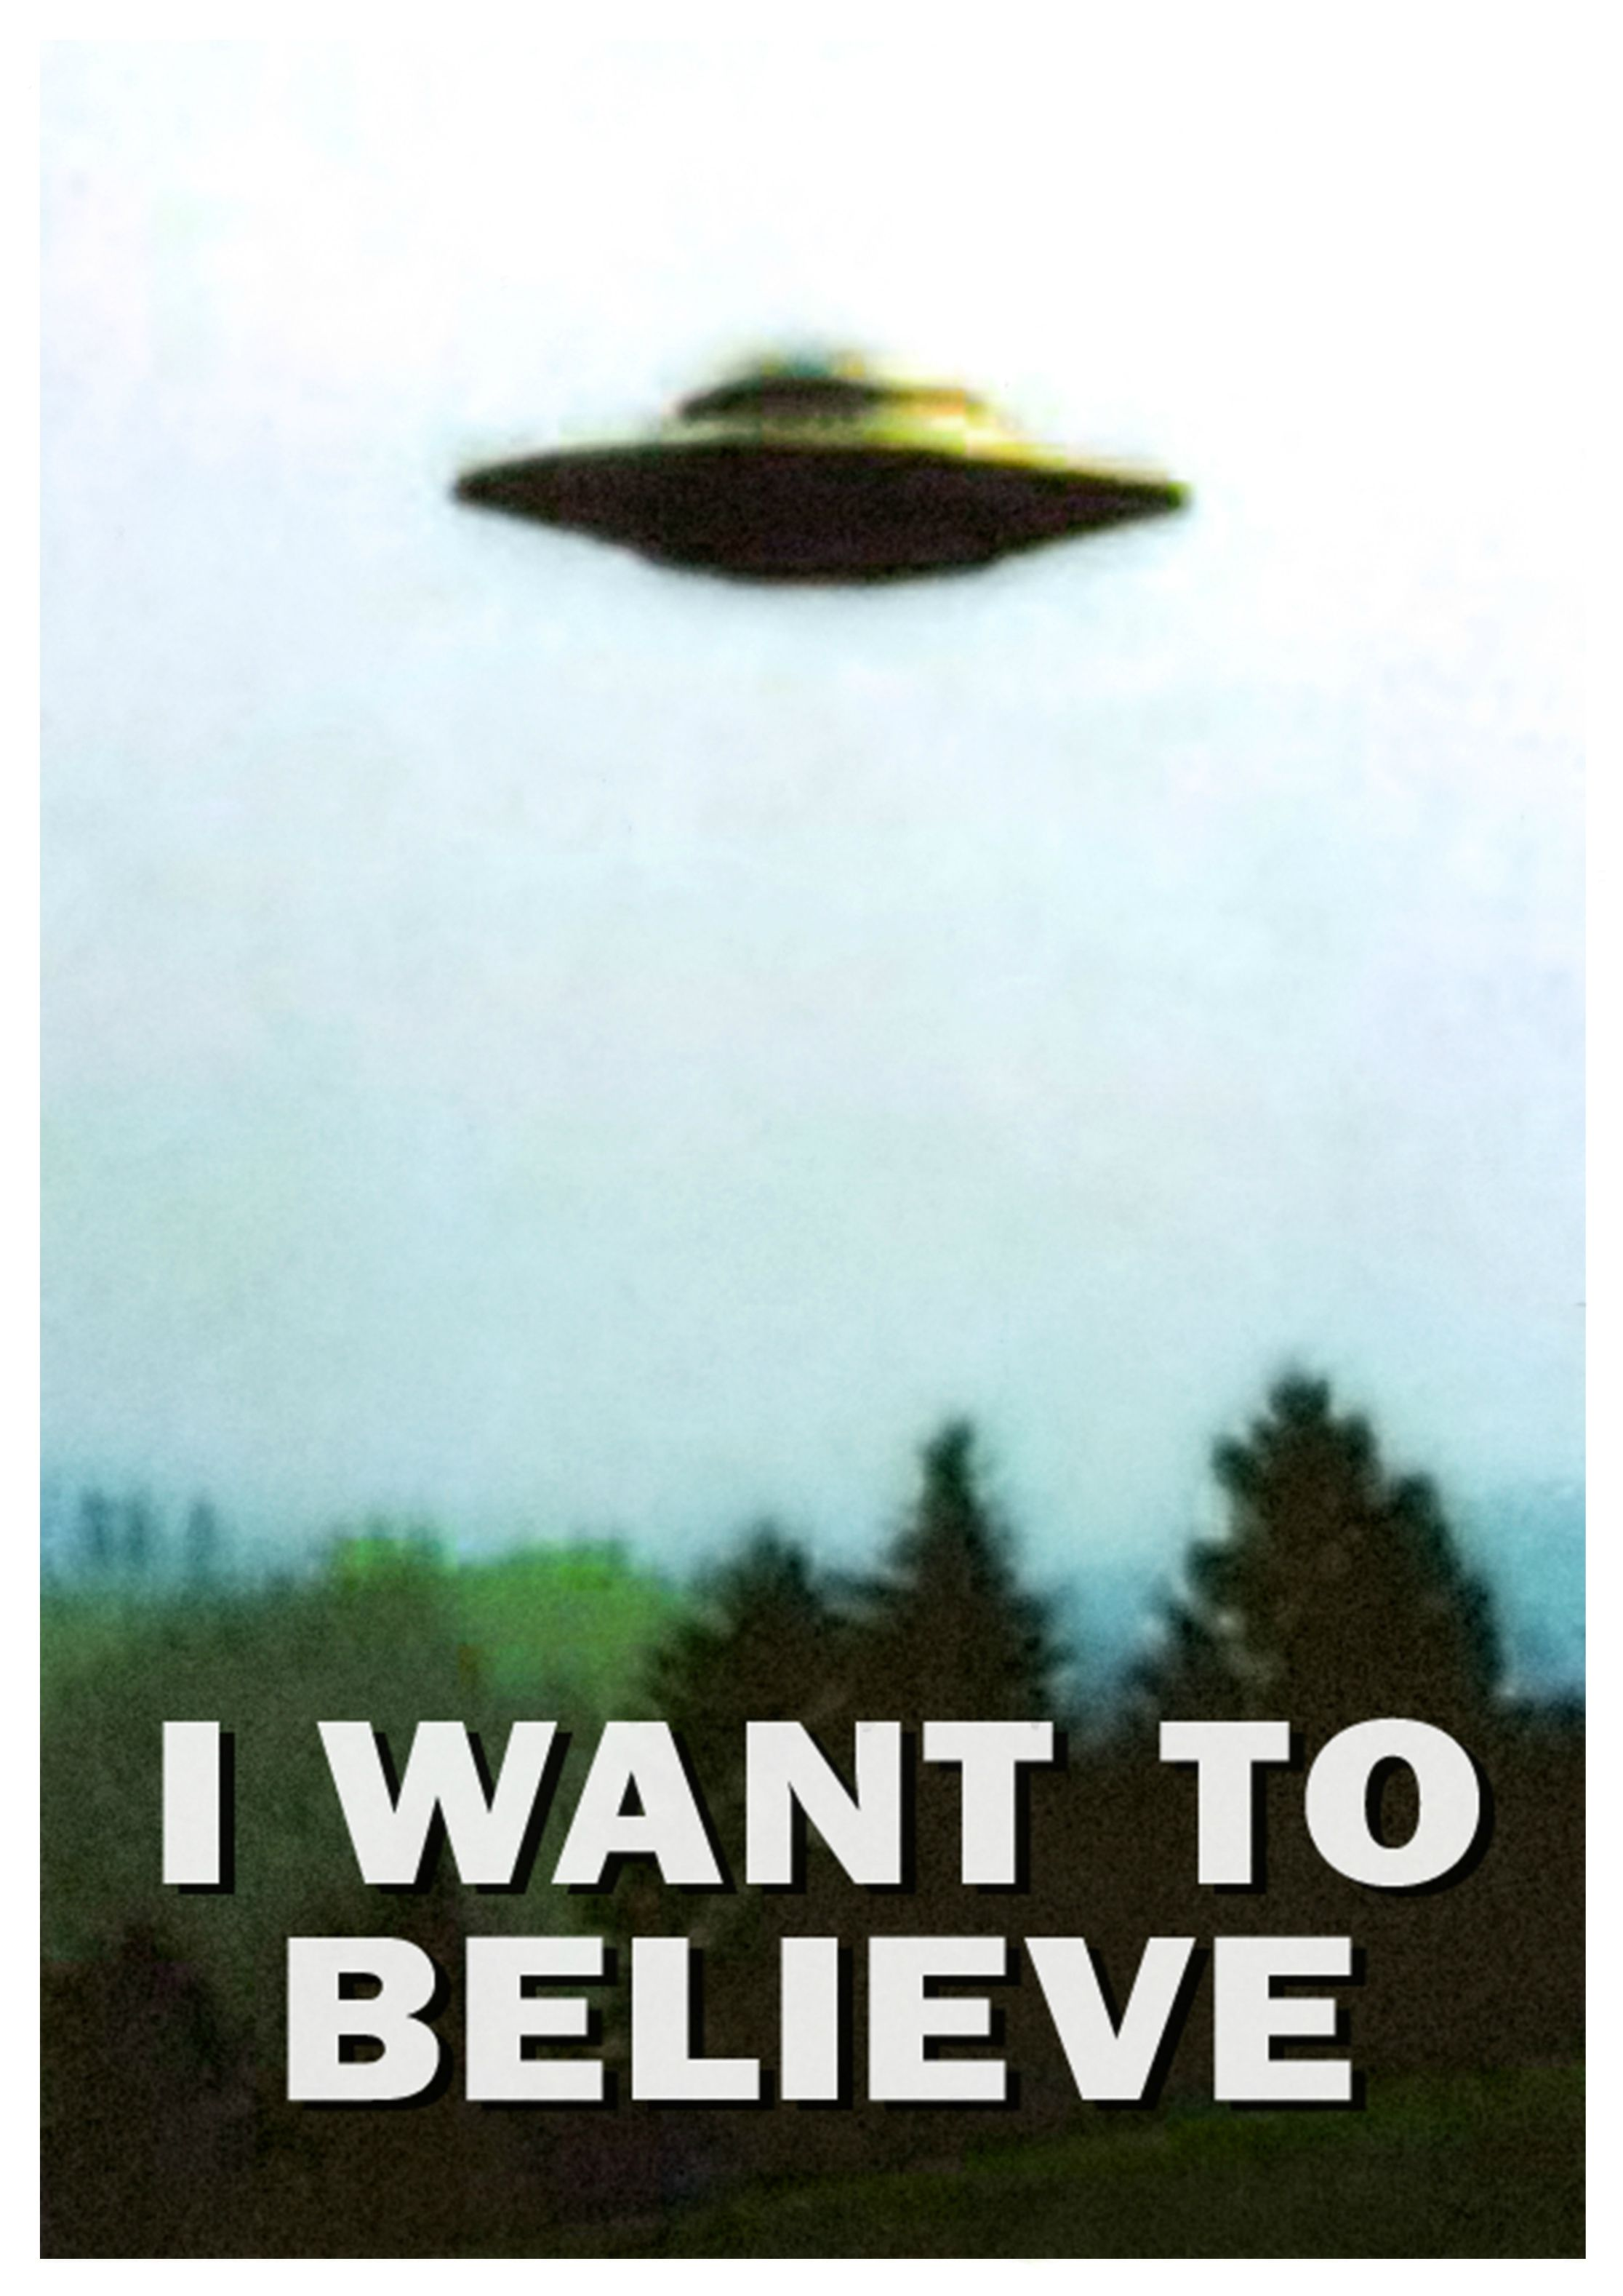 10_xfiles_i_want_to_believe_poster.jpg